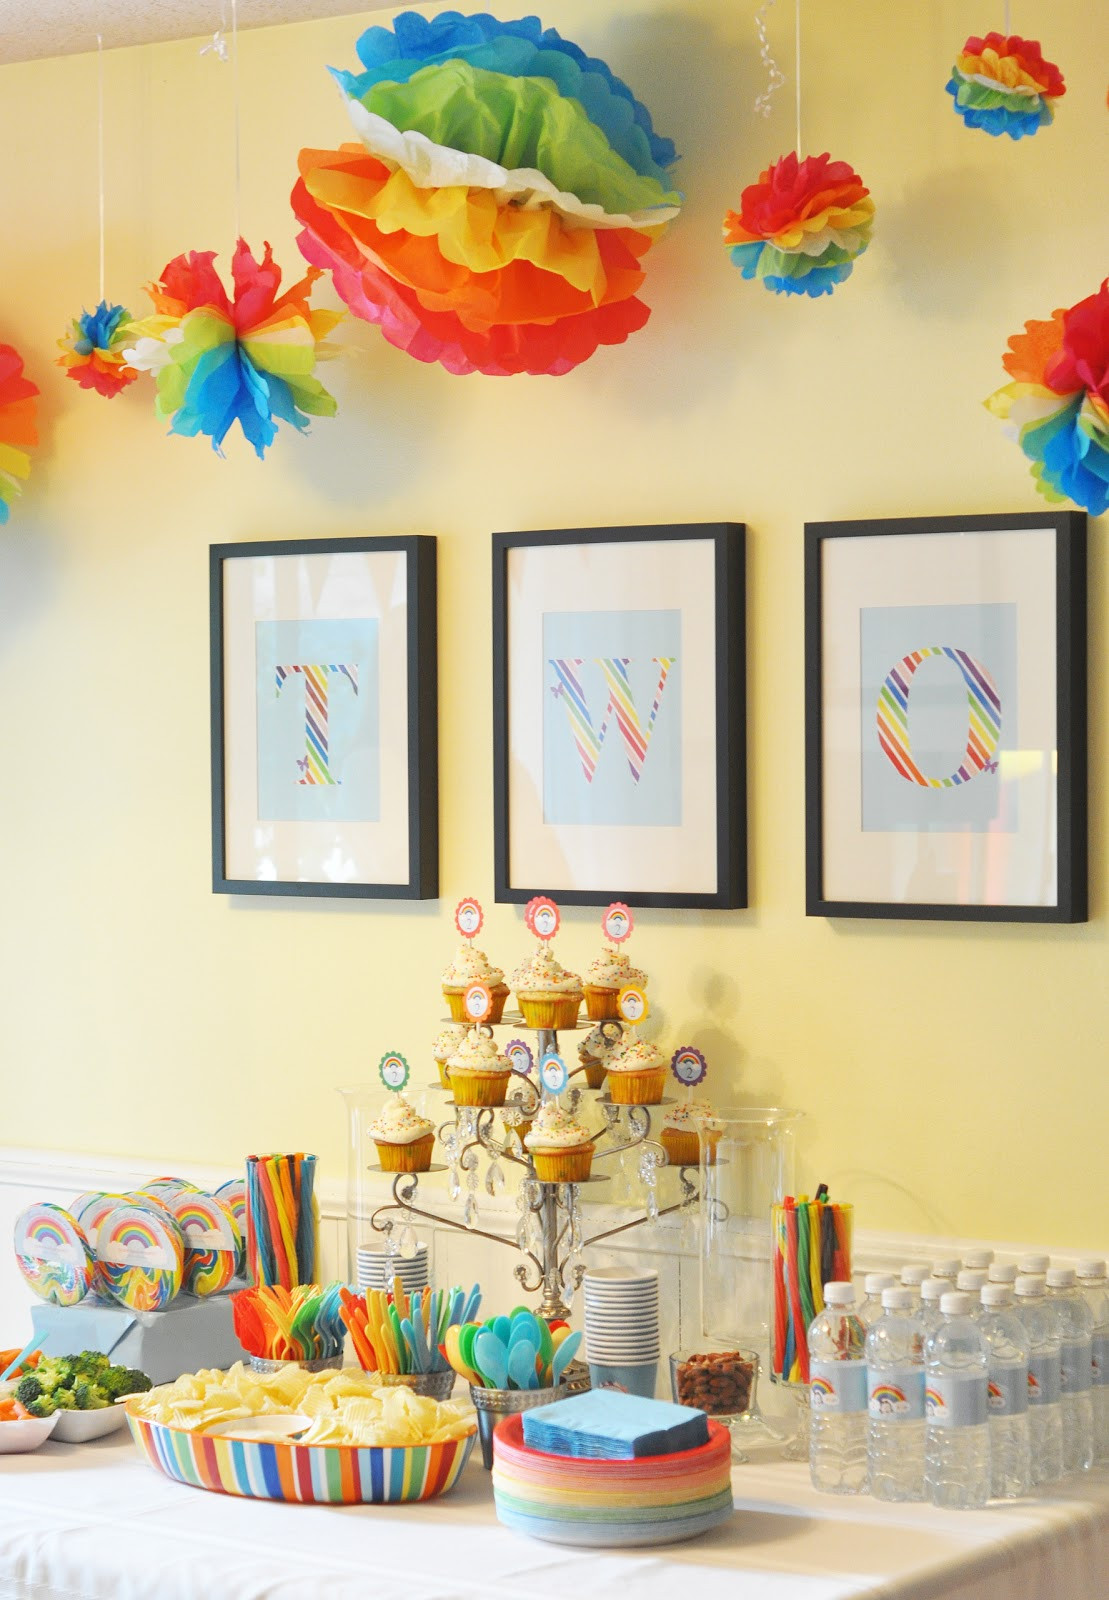 Best ideas about Rainbow Birthday Decorations . Save or Pin Craftily Ever After Now.